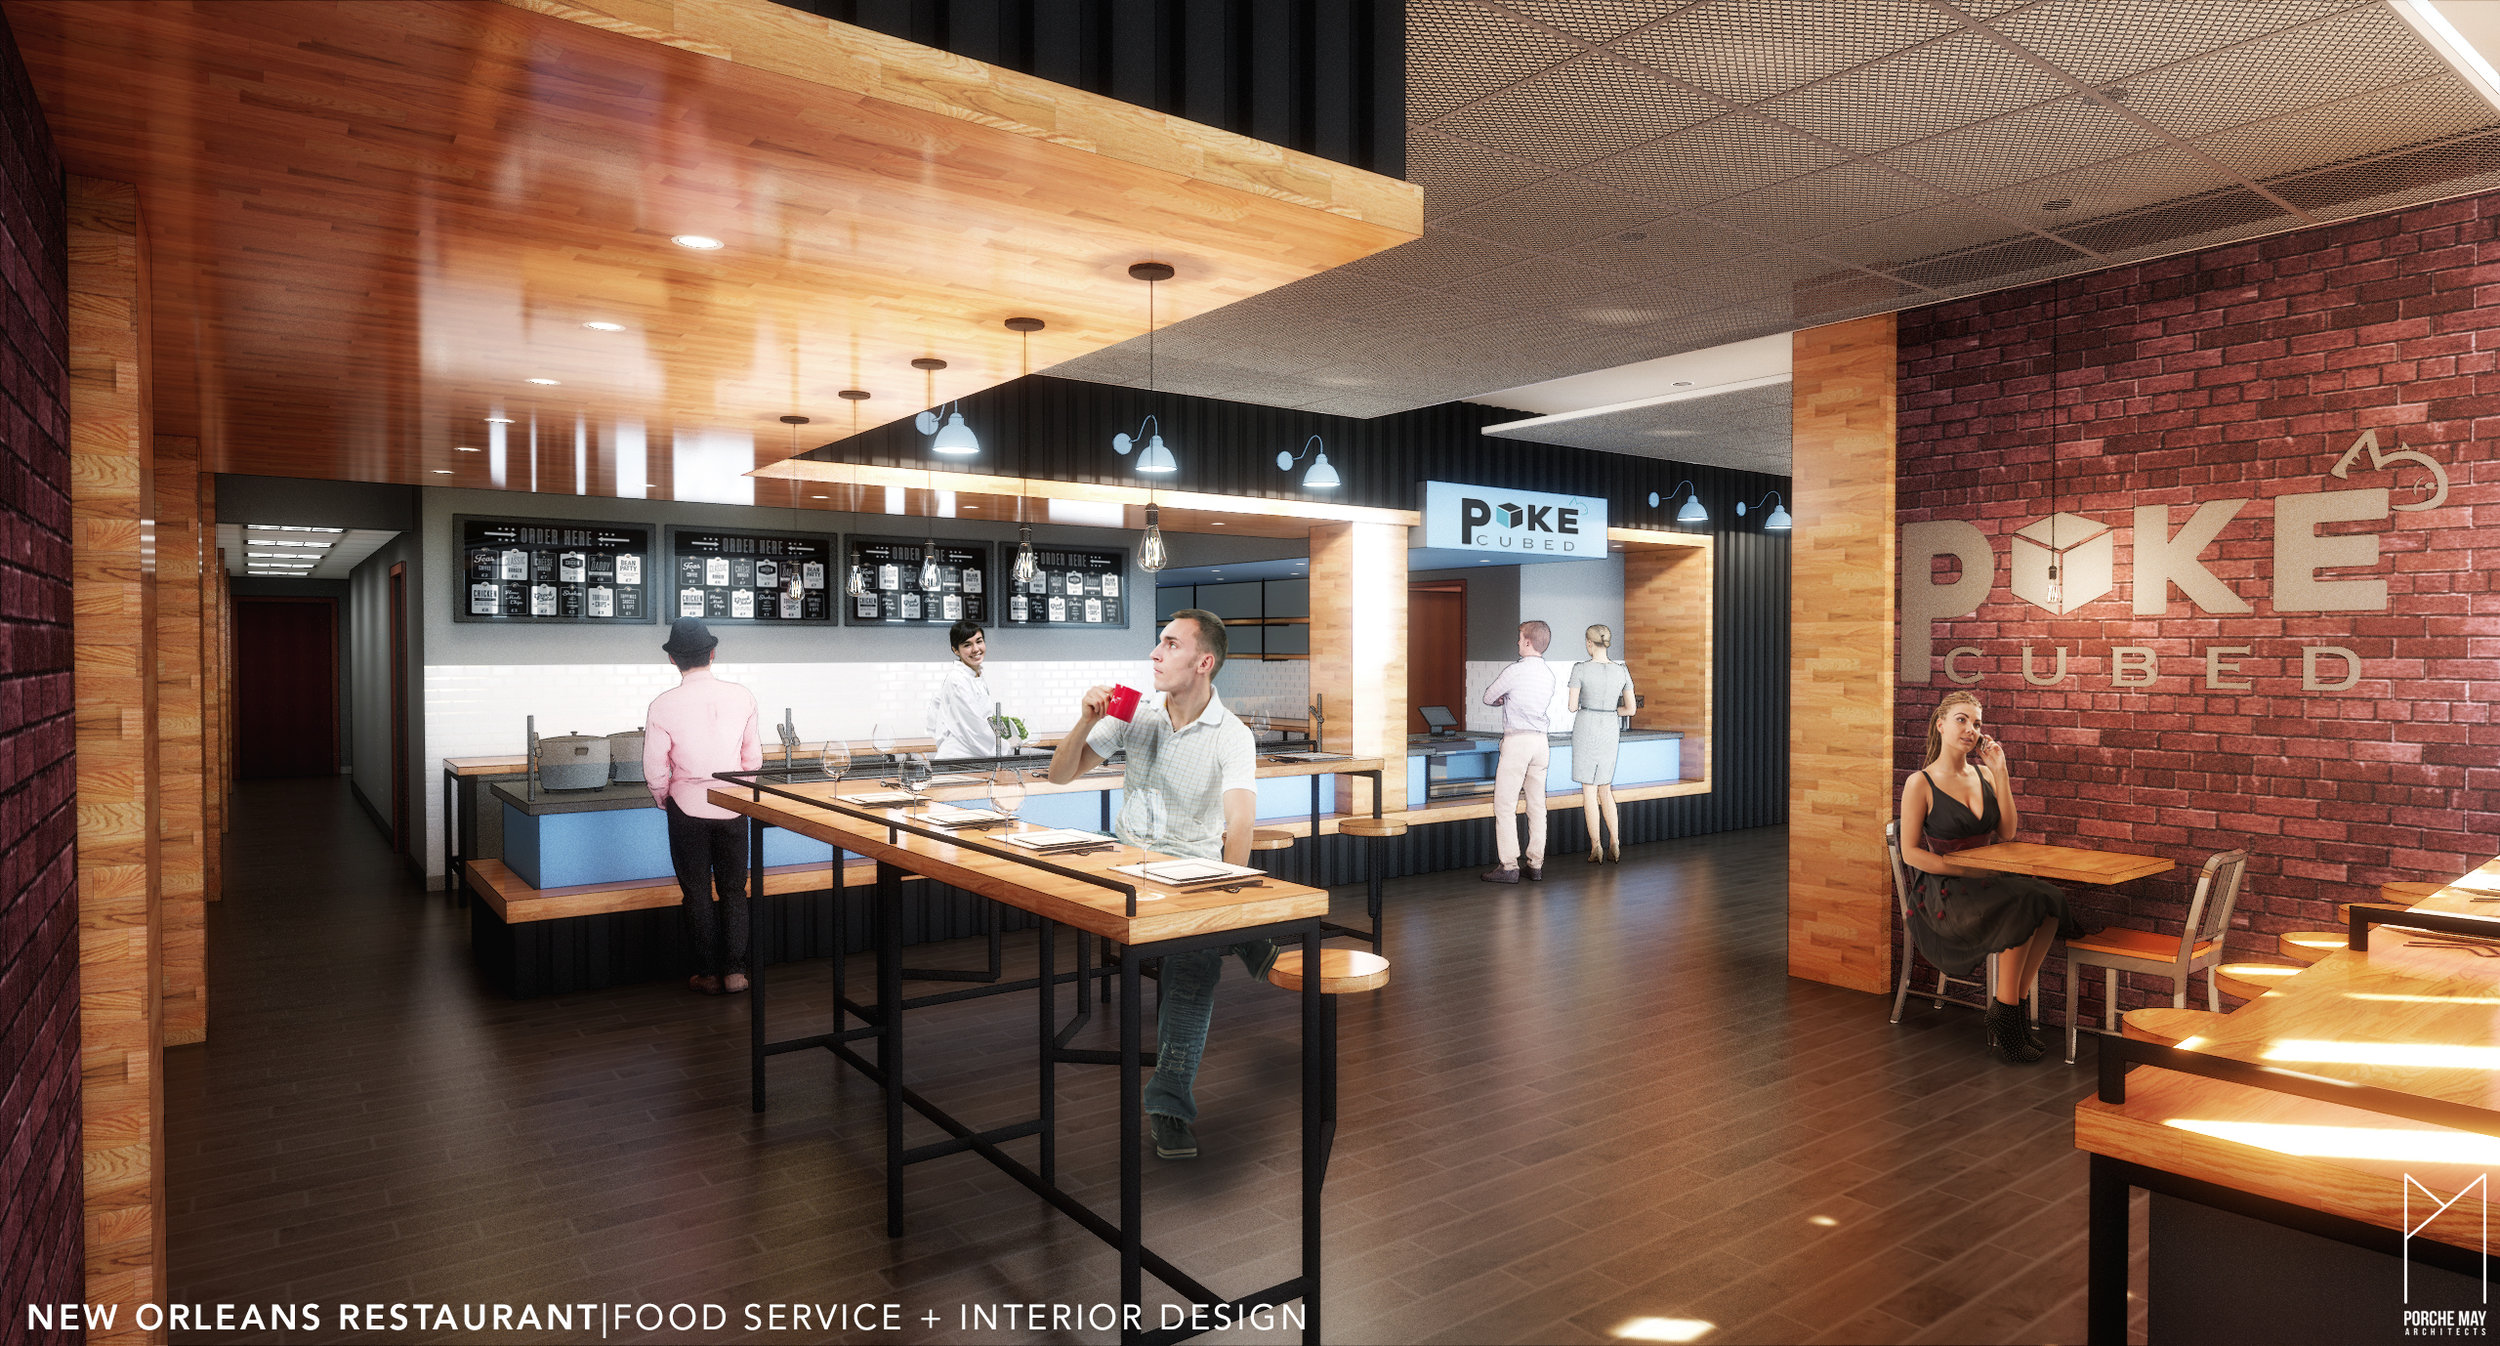 """Located on St. Charles Ave in New Orleans, LA, this new """"Poke""""-style restaurant creates a contemporary vibe in a historical building. Porche